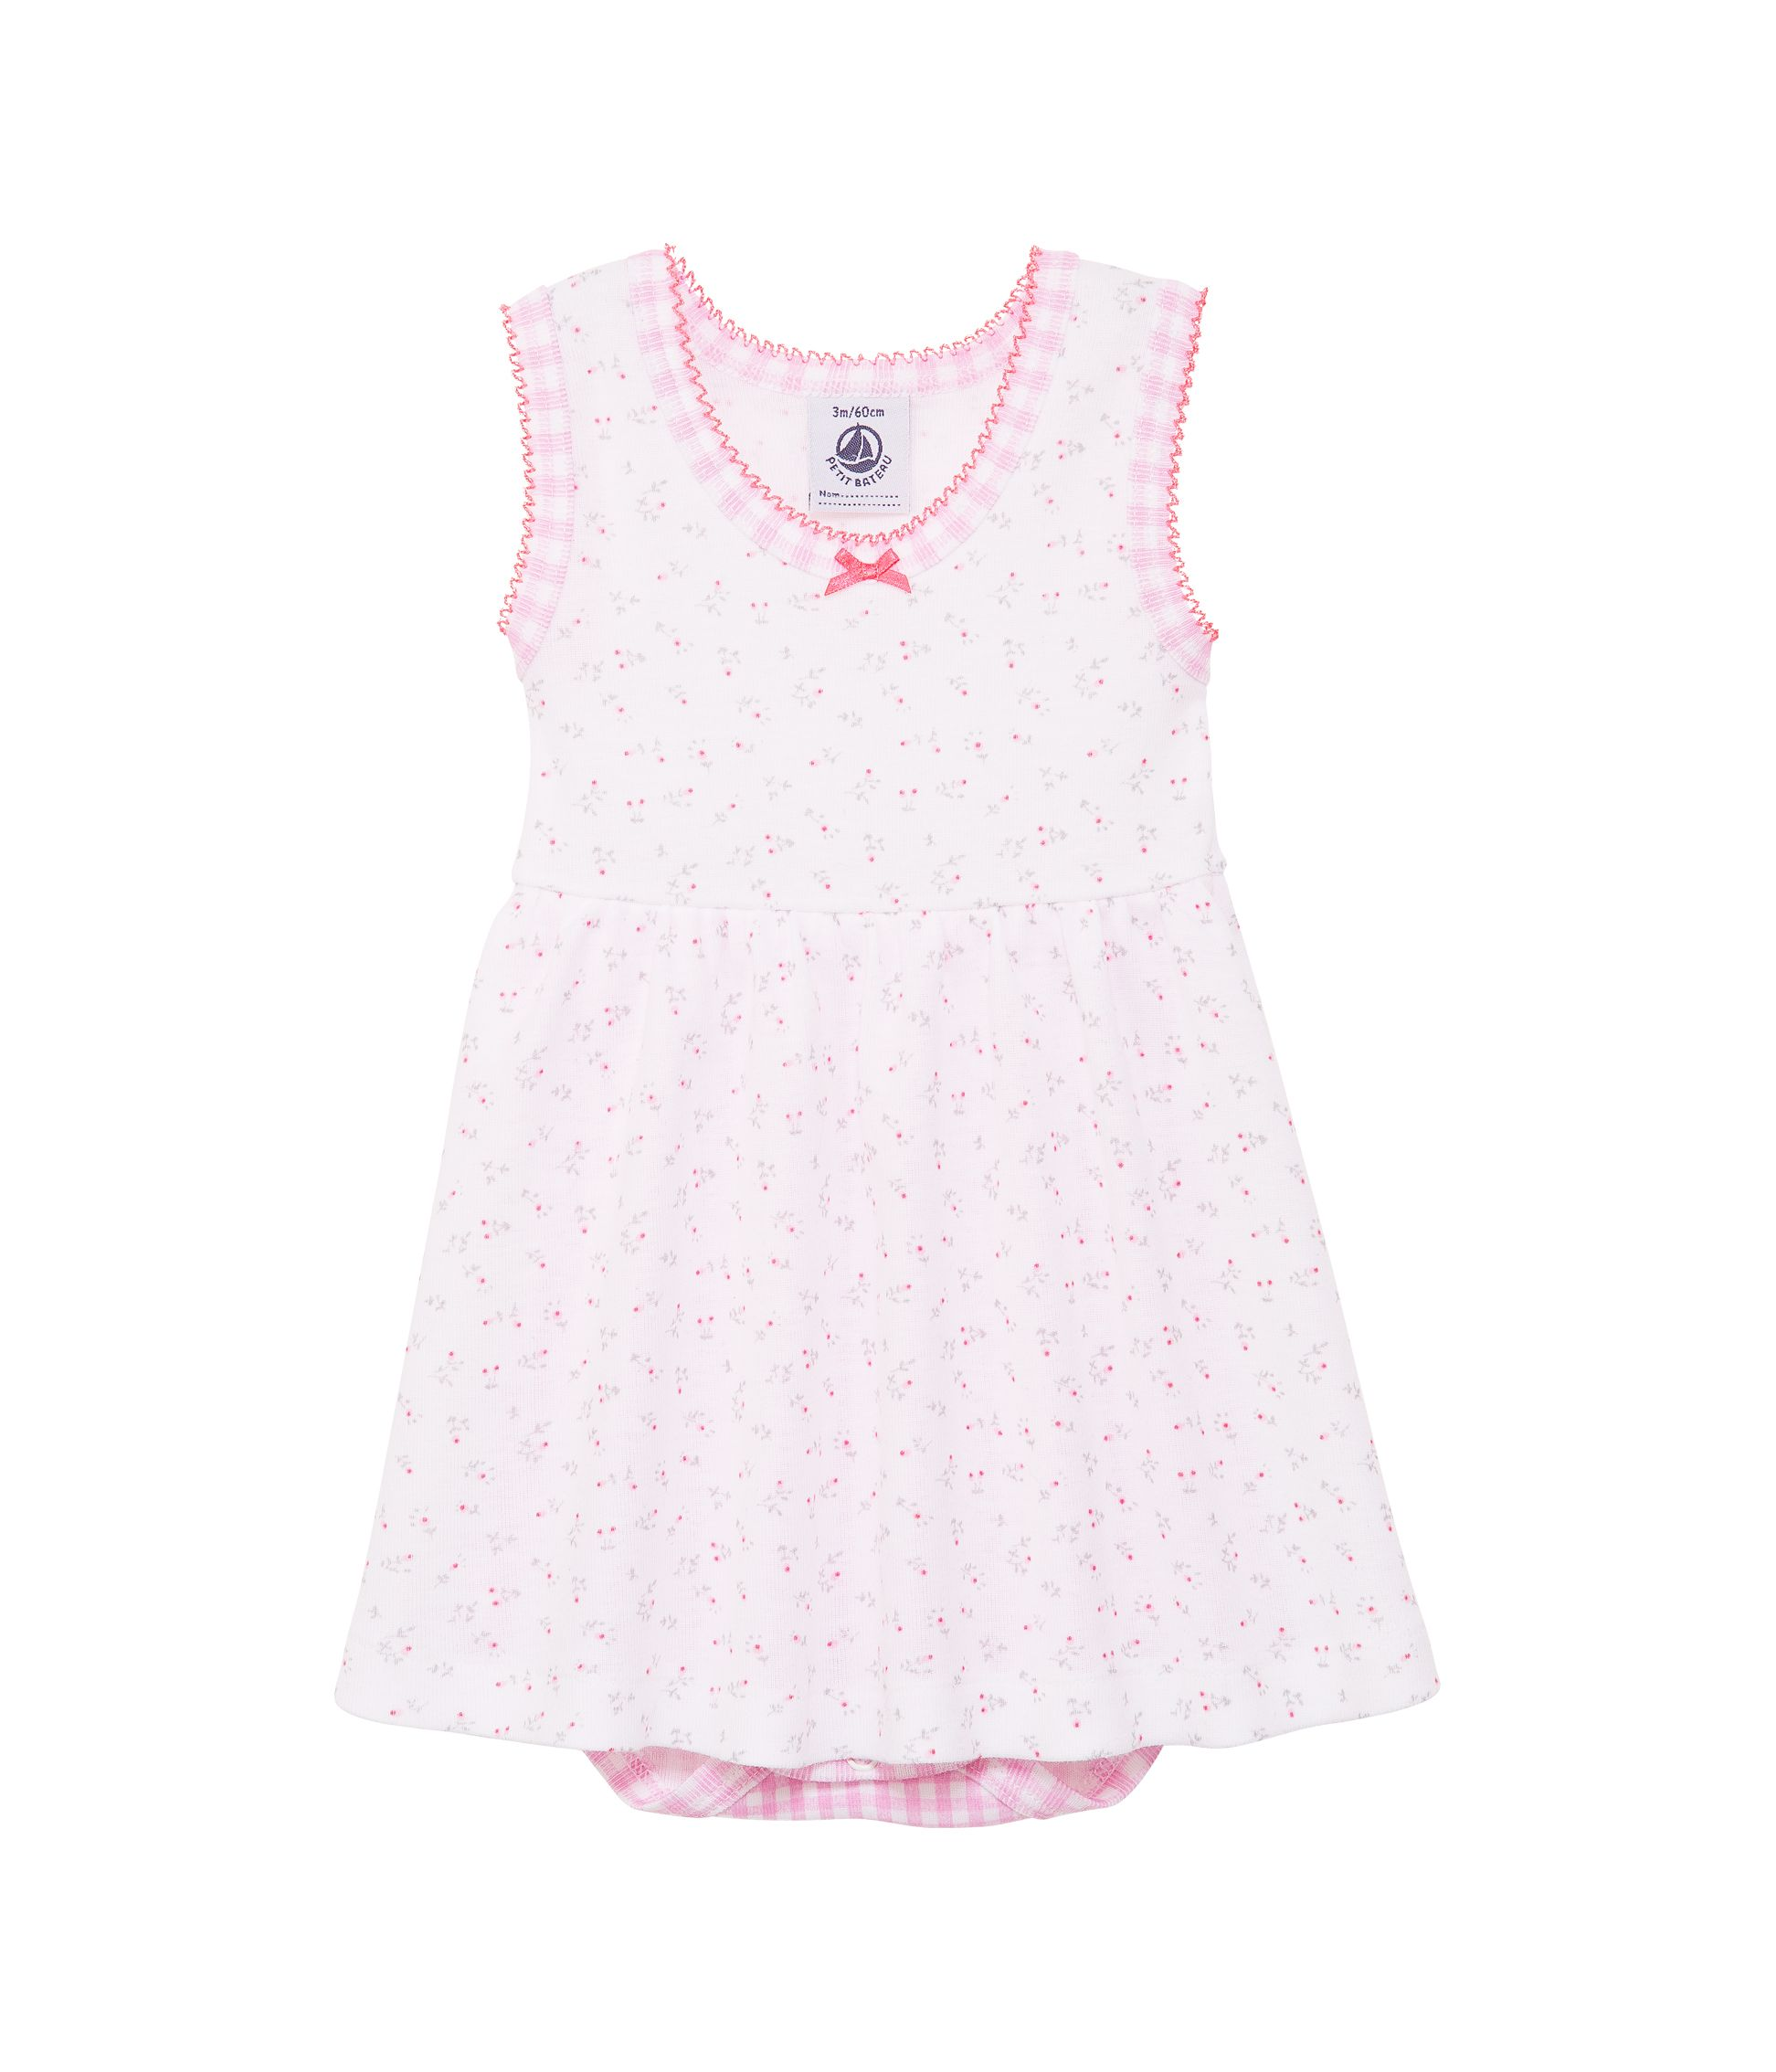 Baby girls dress with bodysuit